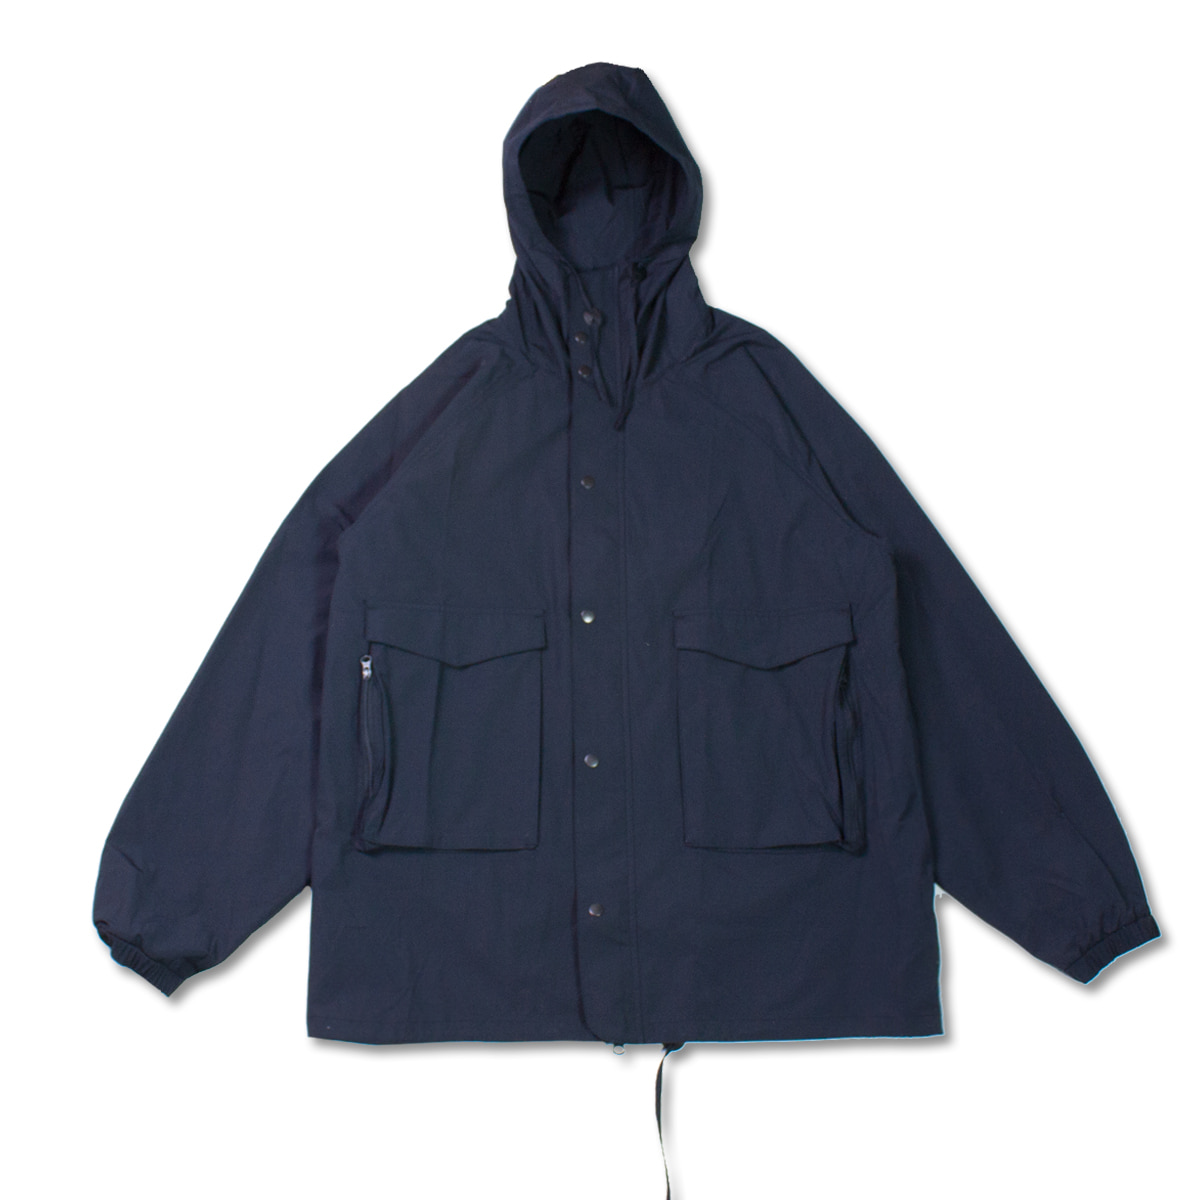 [8DIVISION] HODED WEP JACKET 'NAVY'